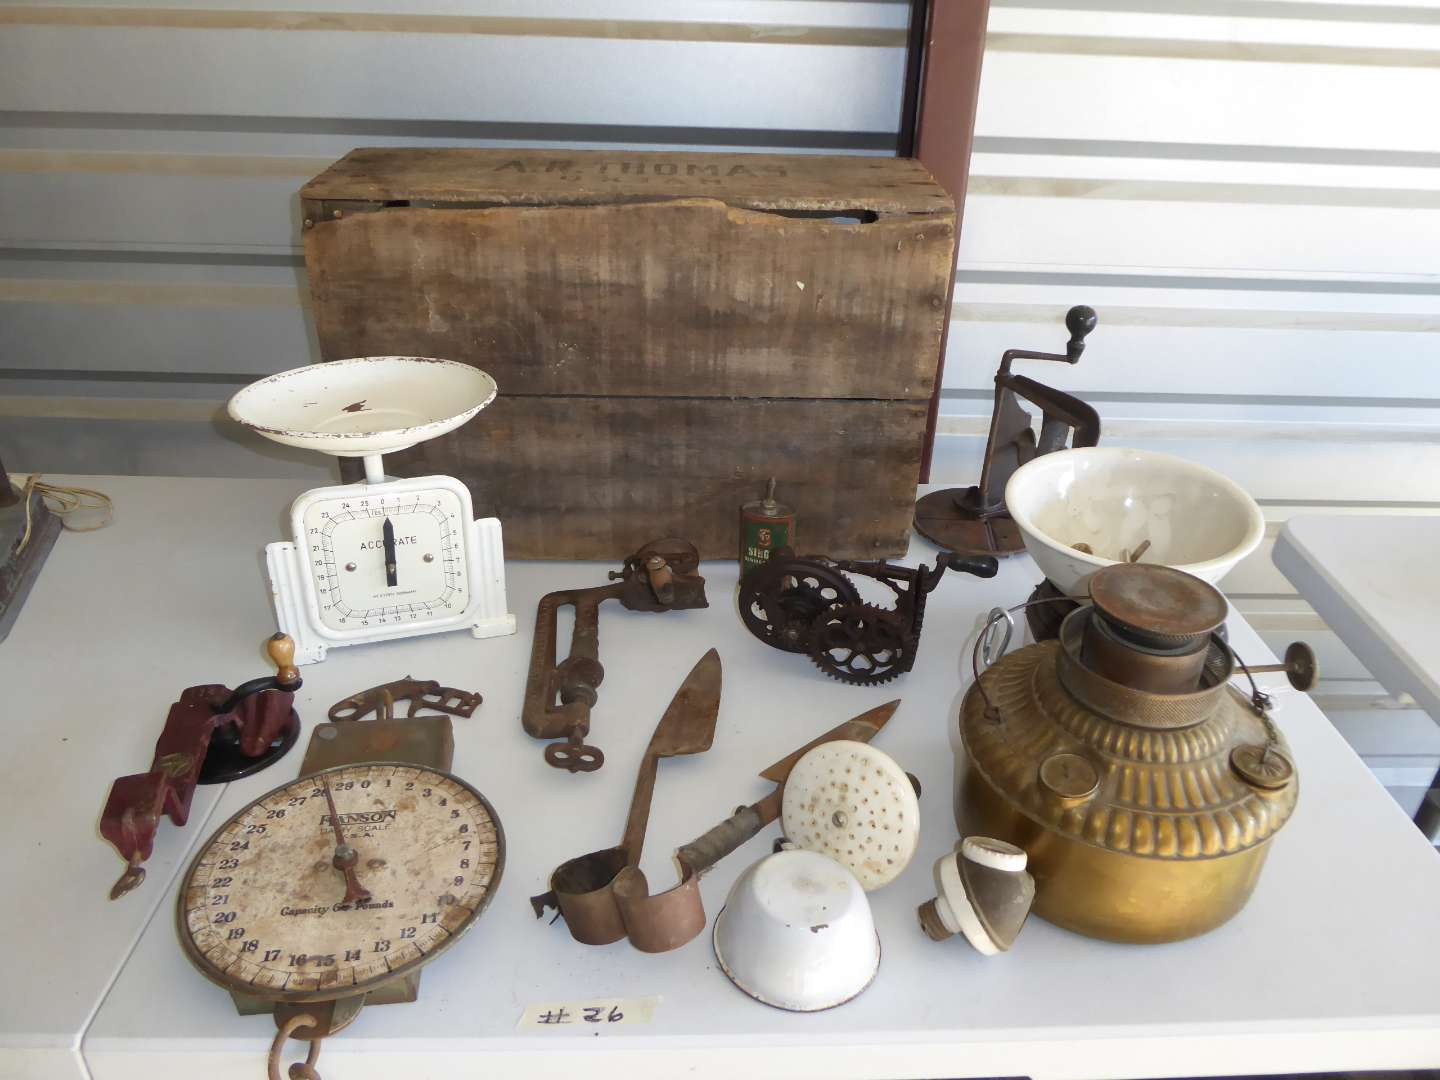 Lot # 26 - Vintage Scales, Lamp & Collectibles  (main image)